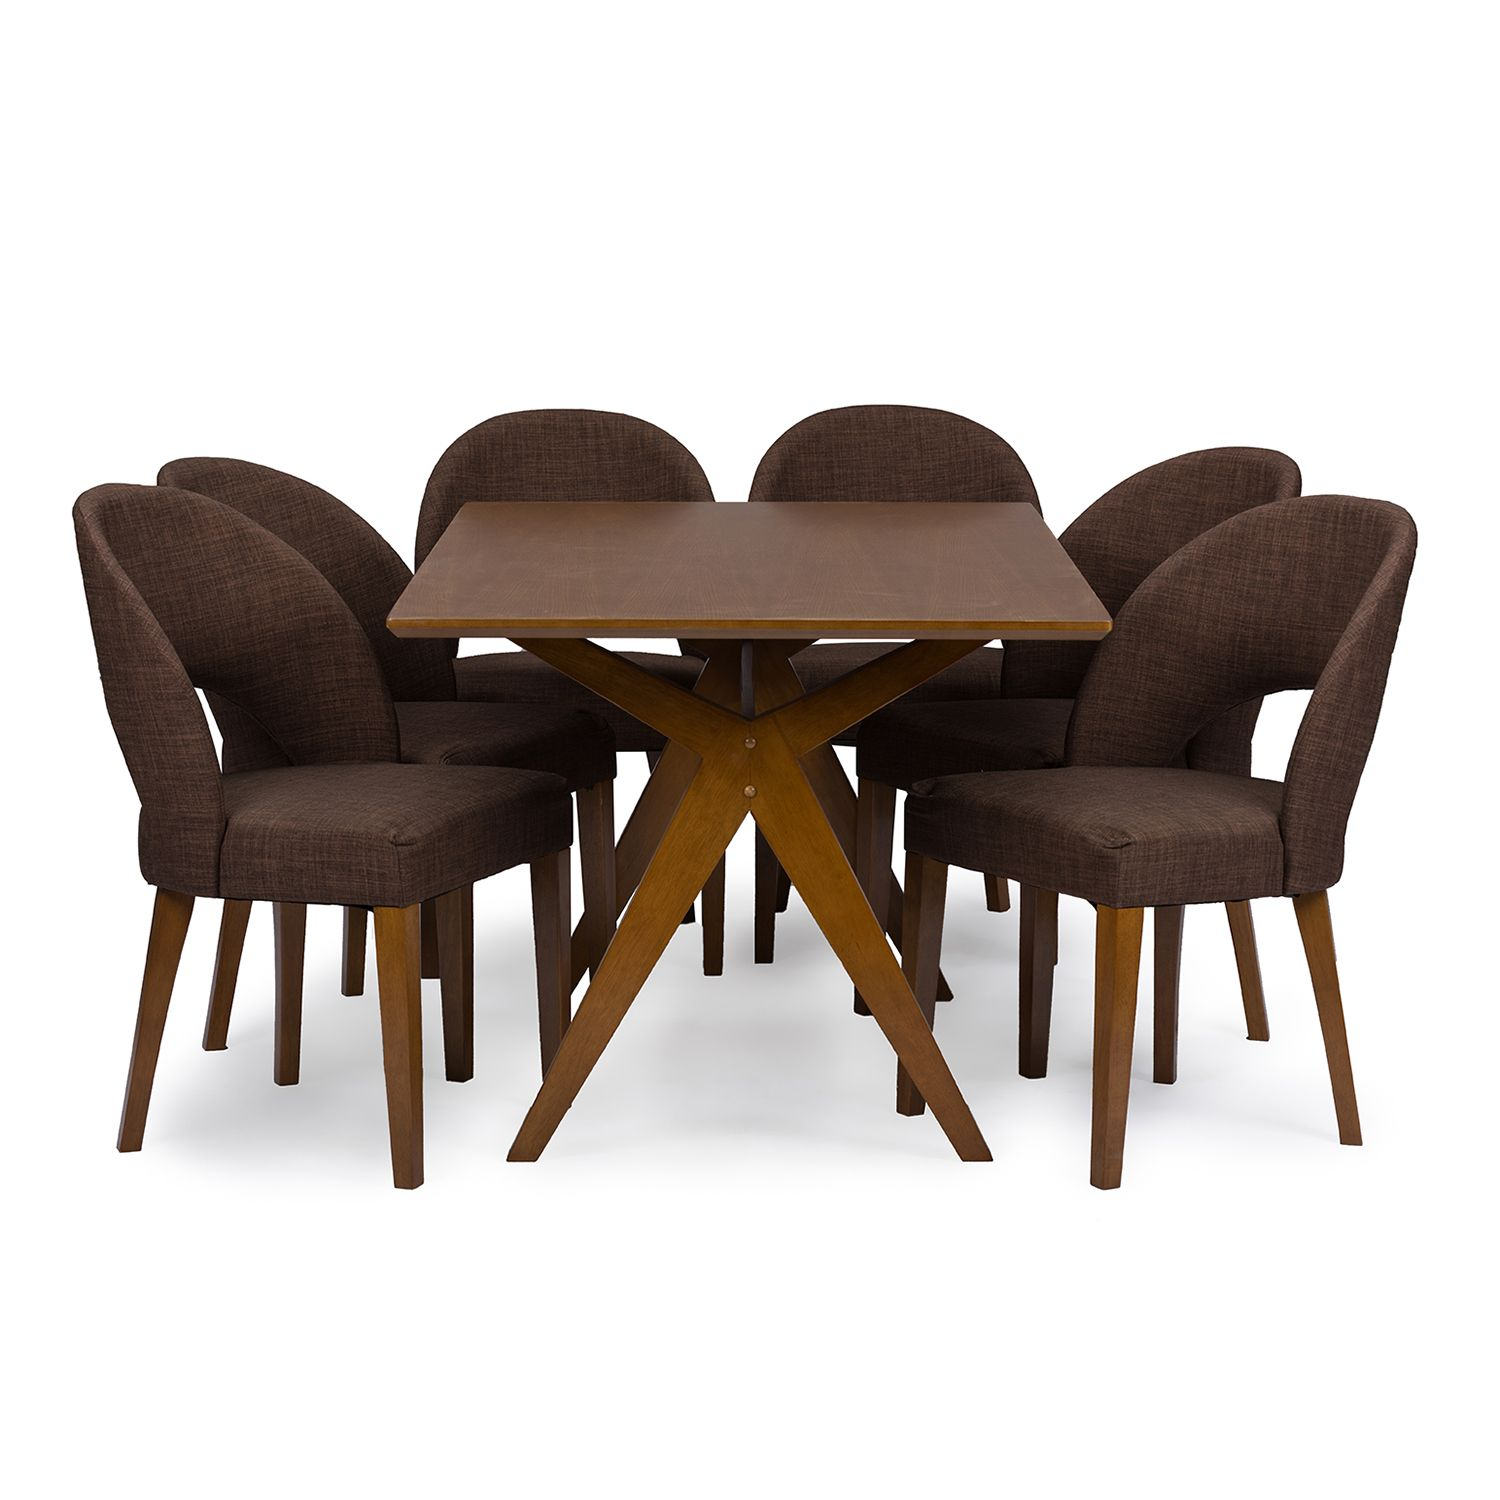 Baxton Studio Lucas Dining Table U0026 Chair 7 Piece Set